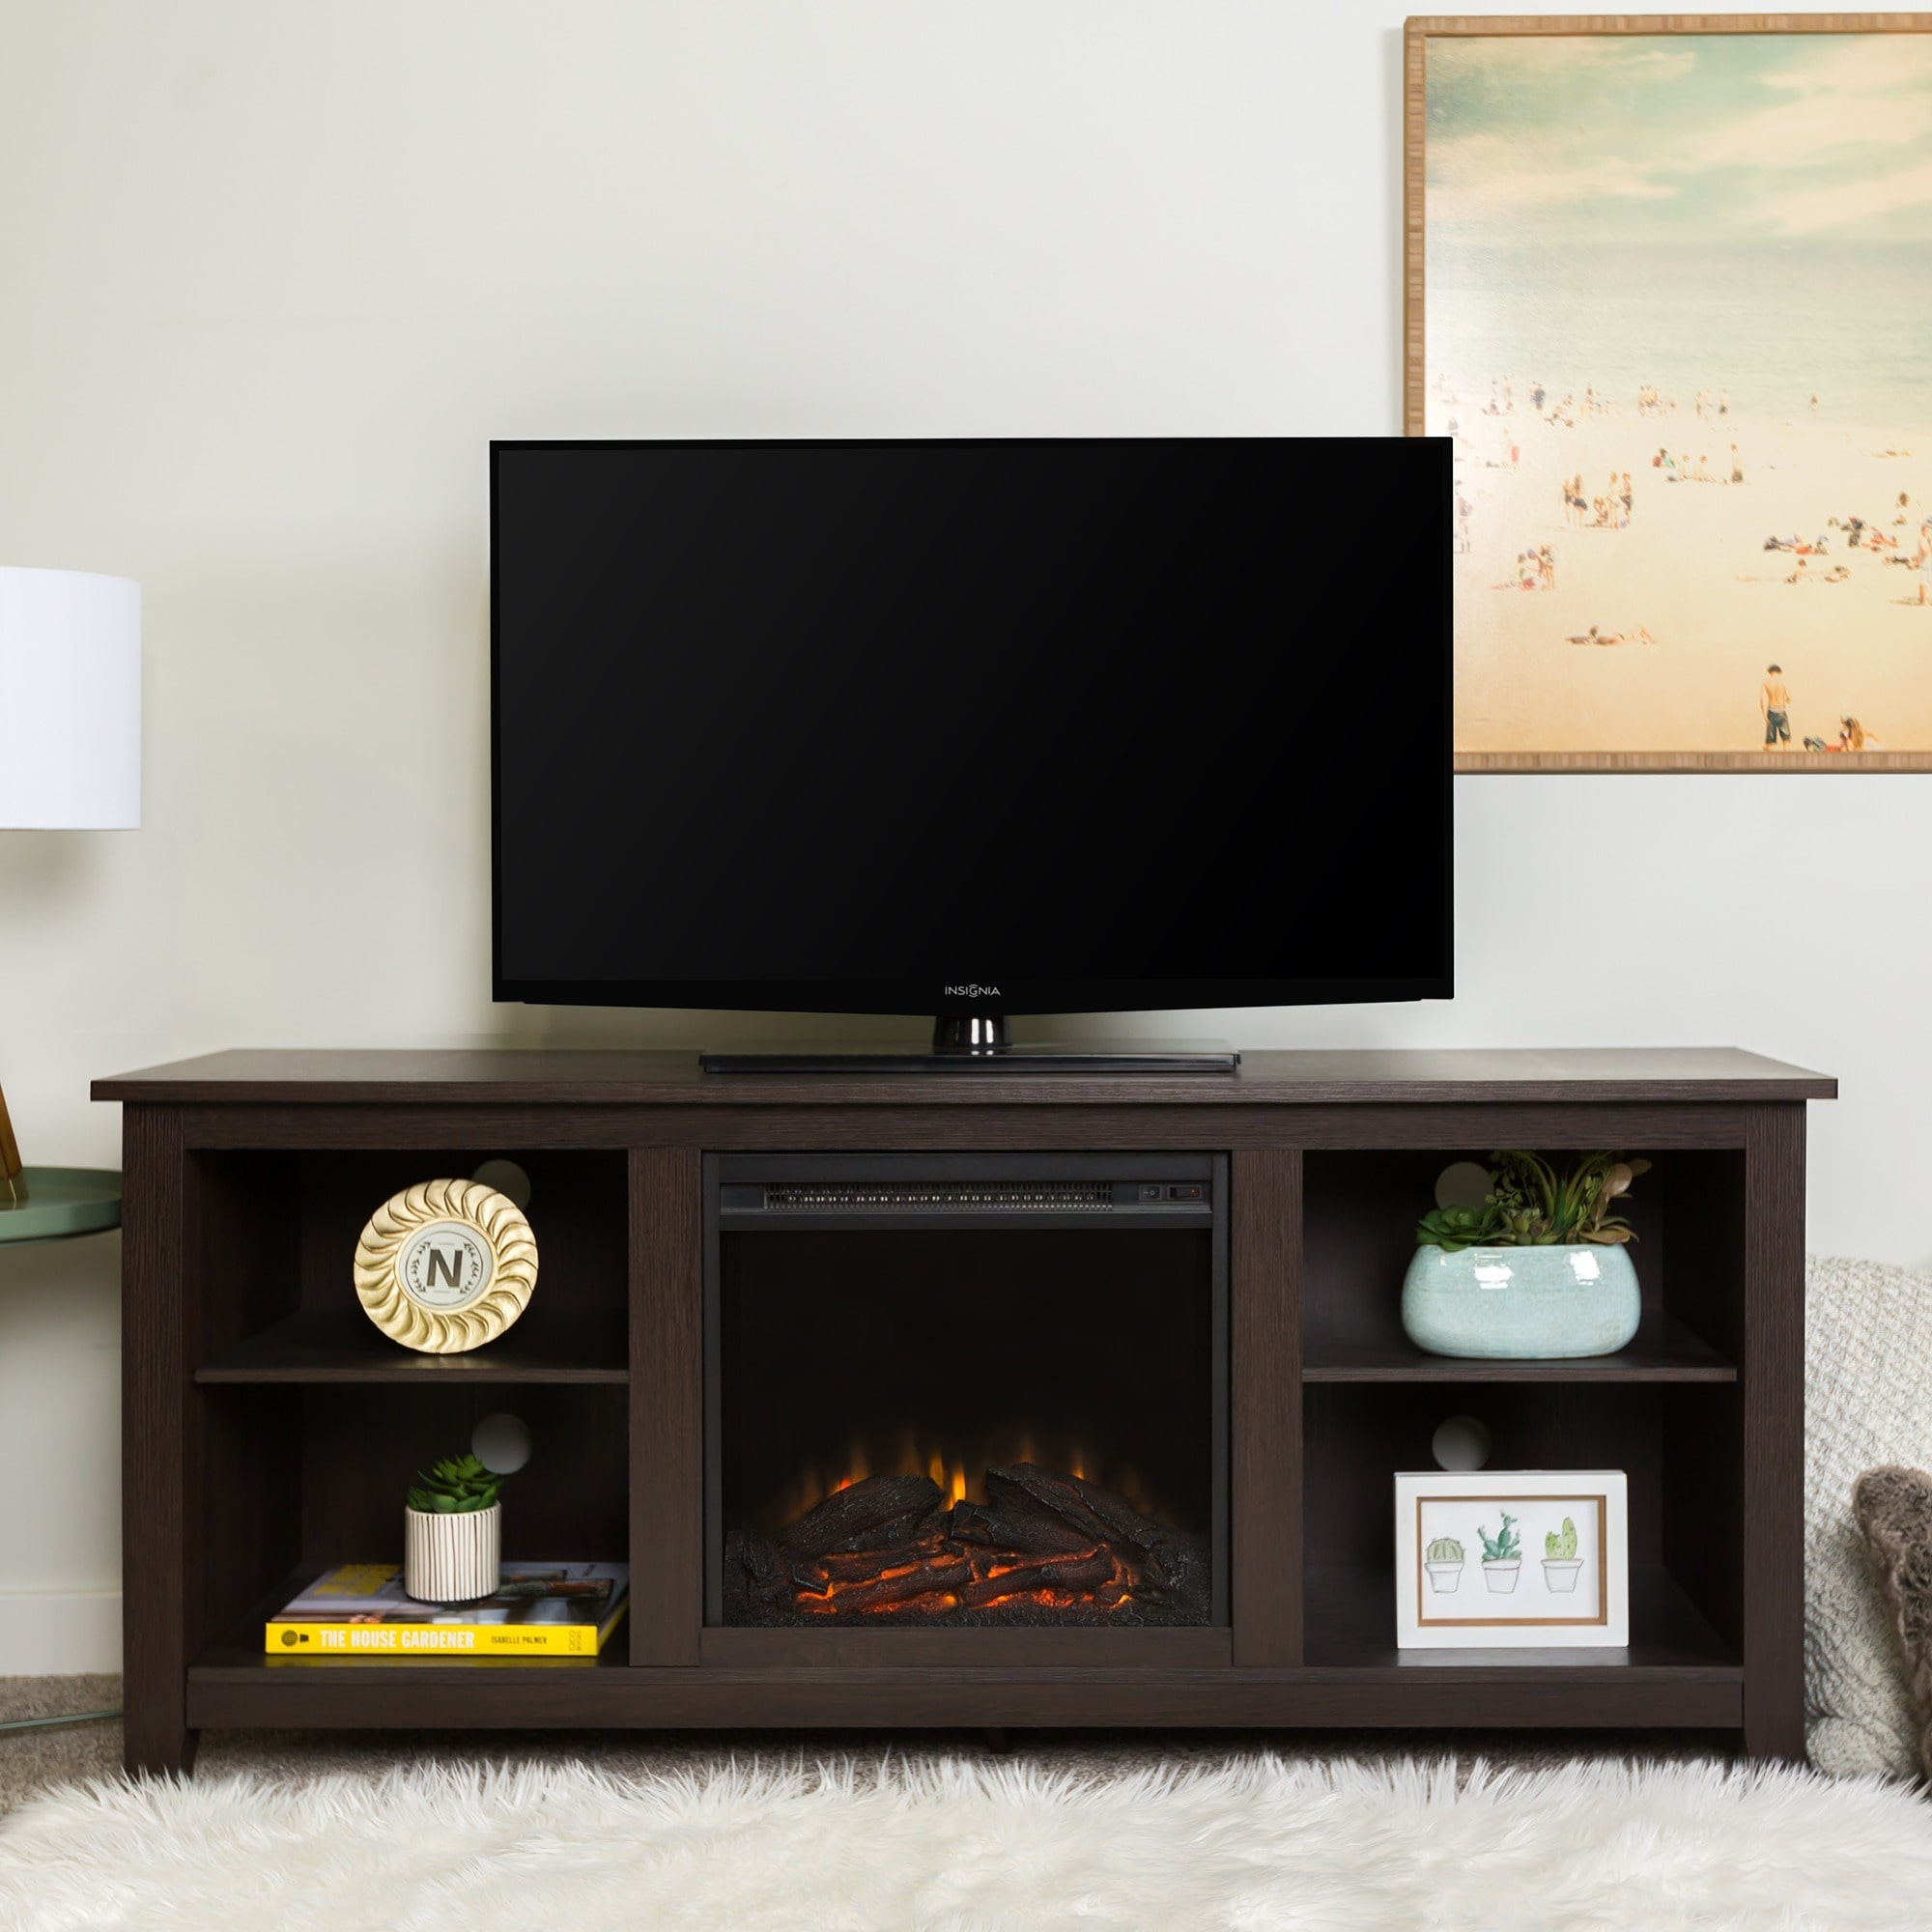 we furniture 58 inch electric fireplace tv stand in espresso